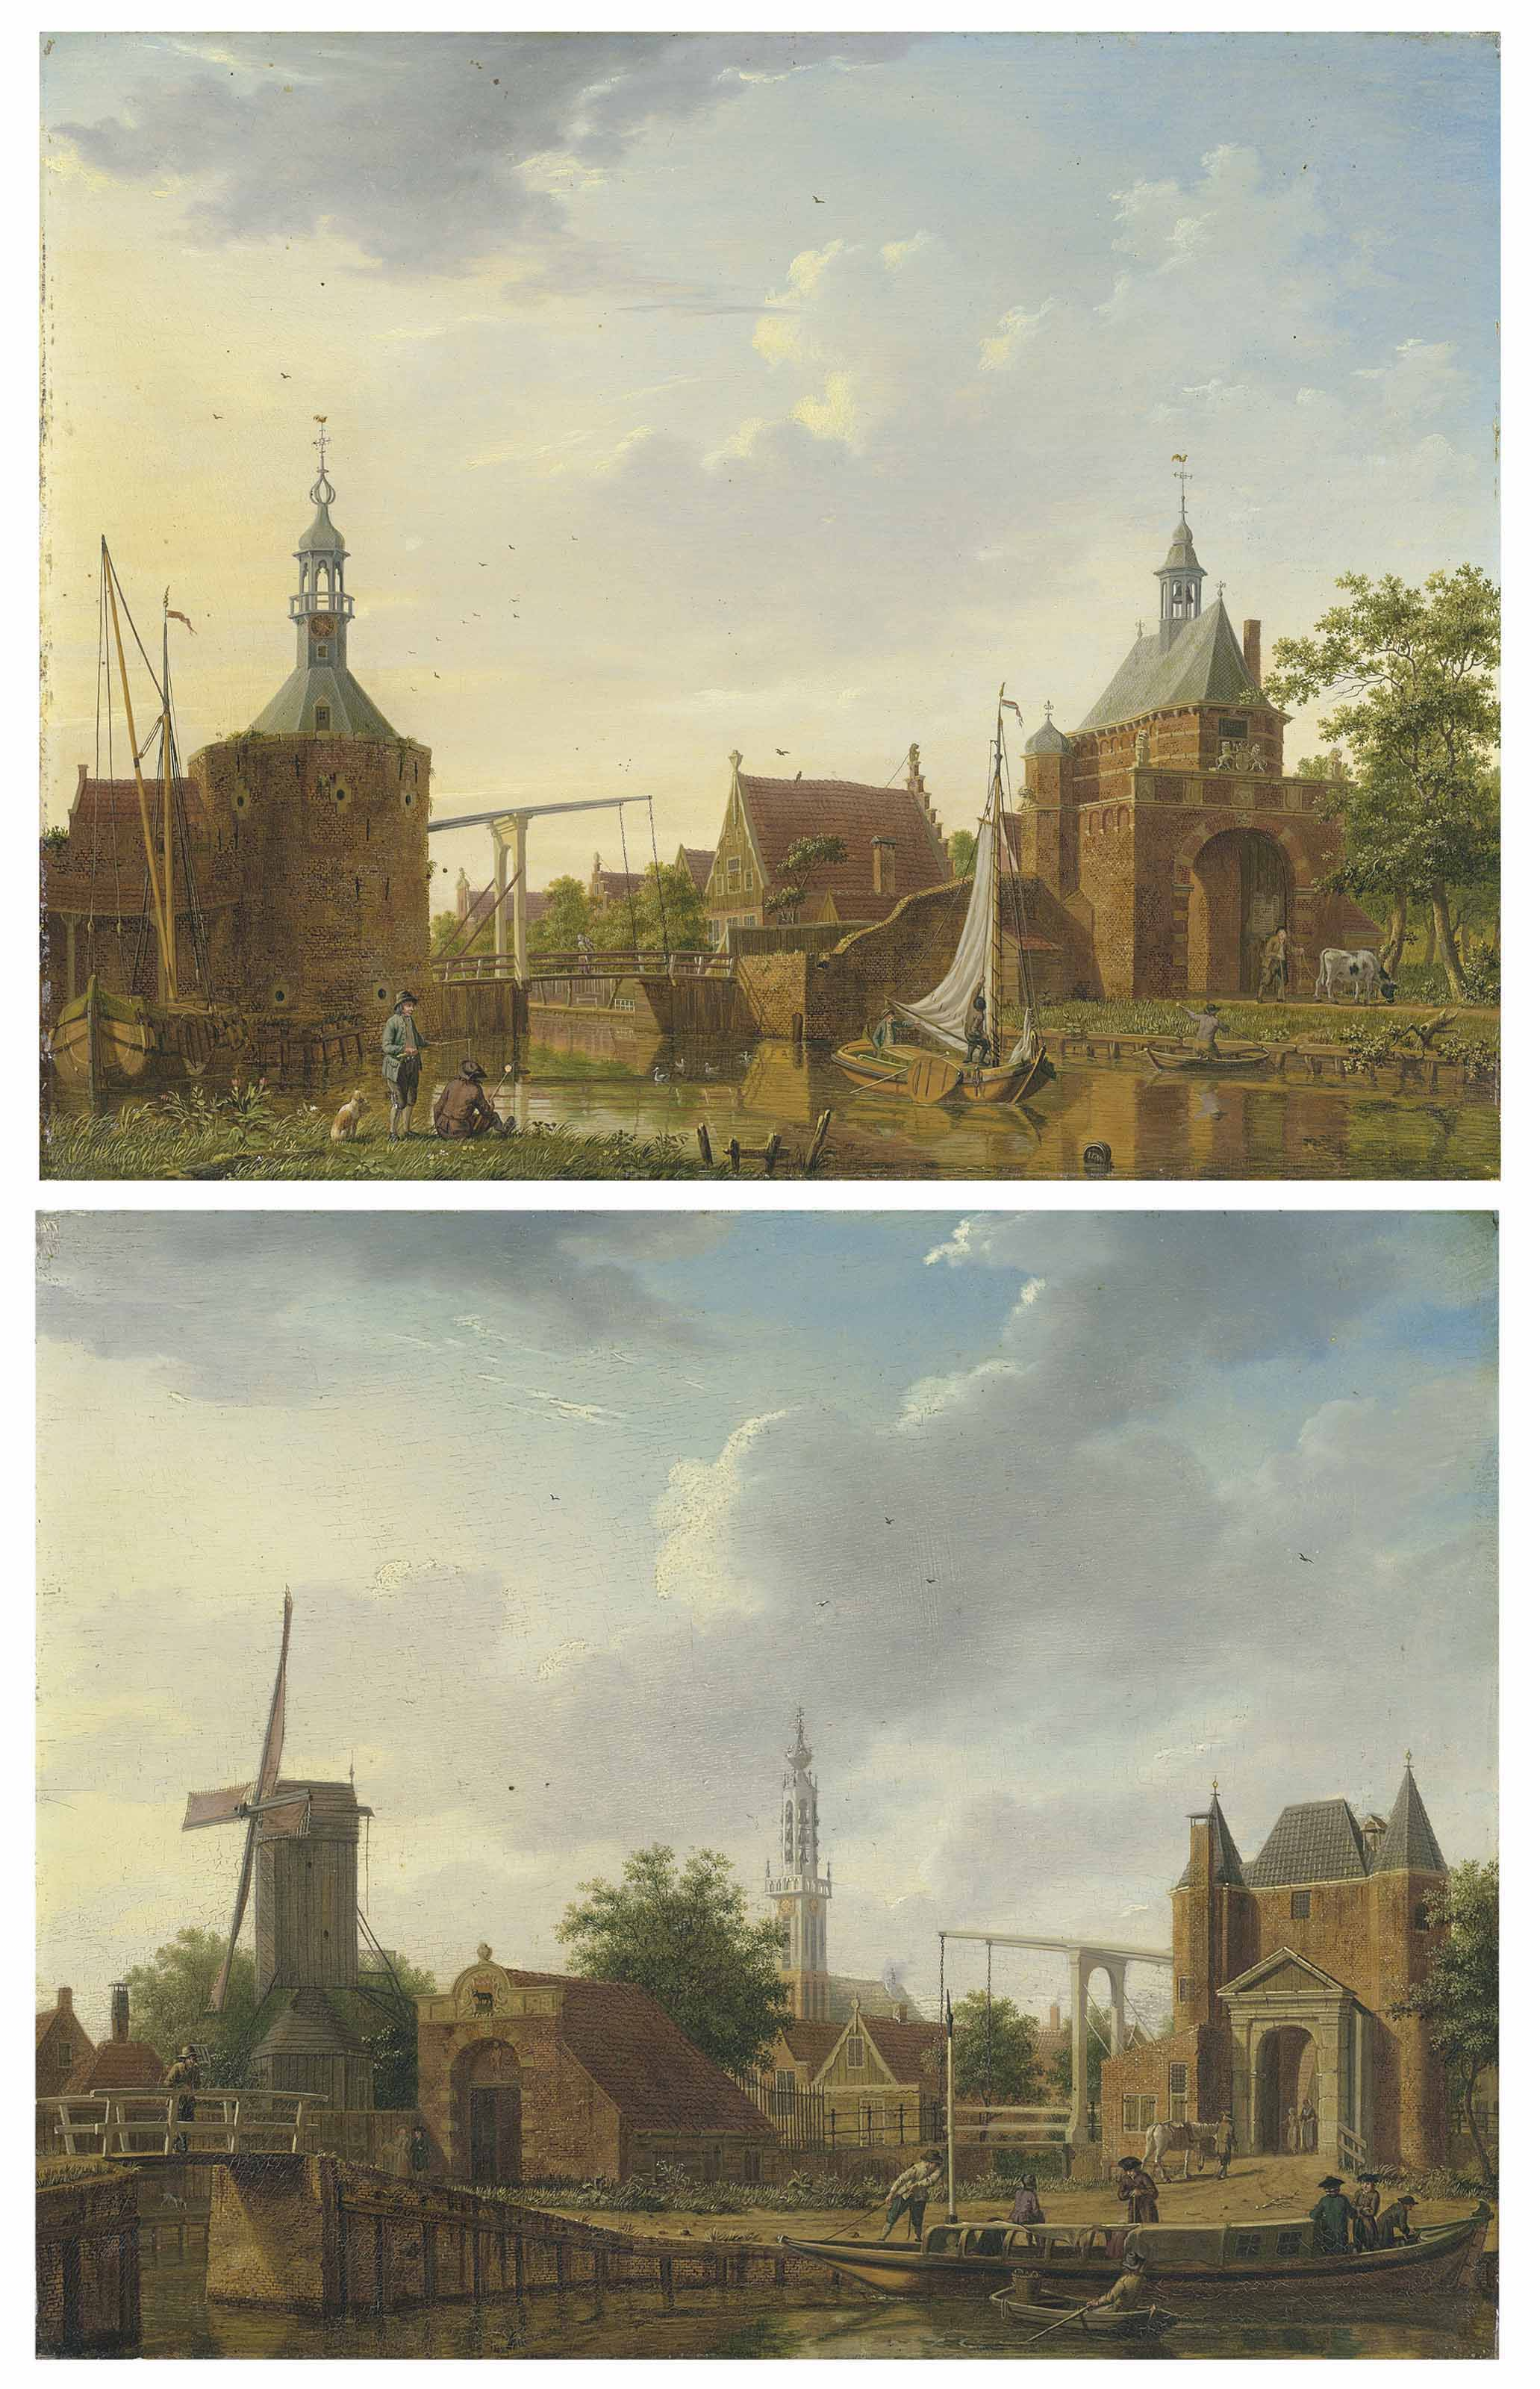 The Keetpoort en Oost and Kaaipoort, Edam; and Purmer and Monnikendammerpoort, Edam with the Kwakelbrug with the spire of the Onze-Lieve-Vrouwe-kerk beyond